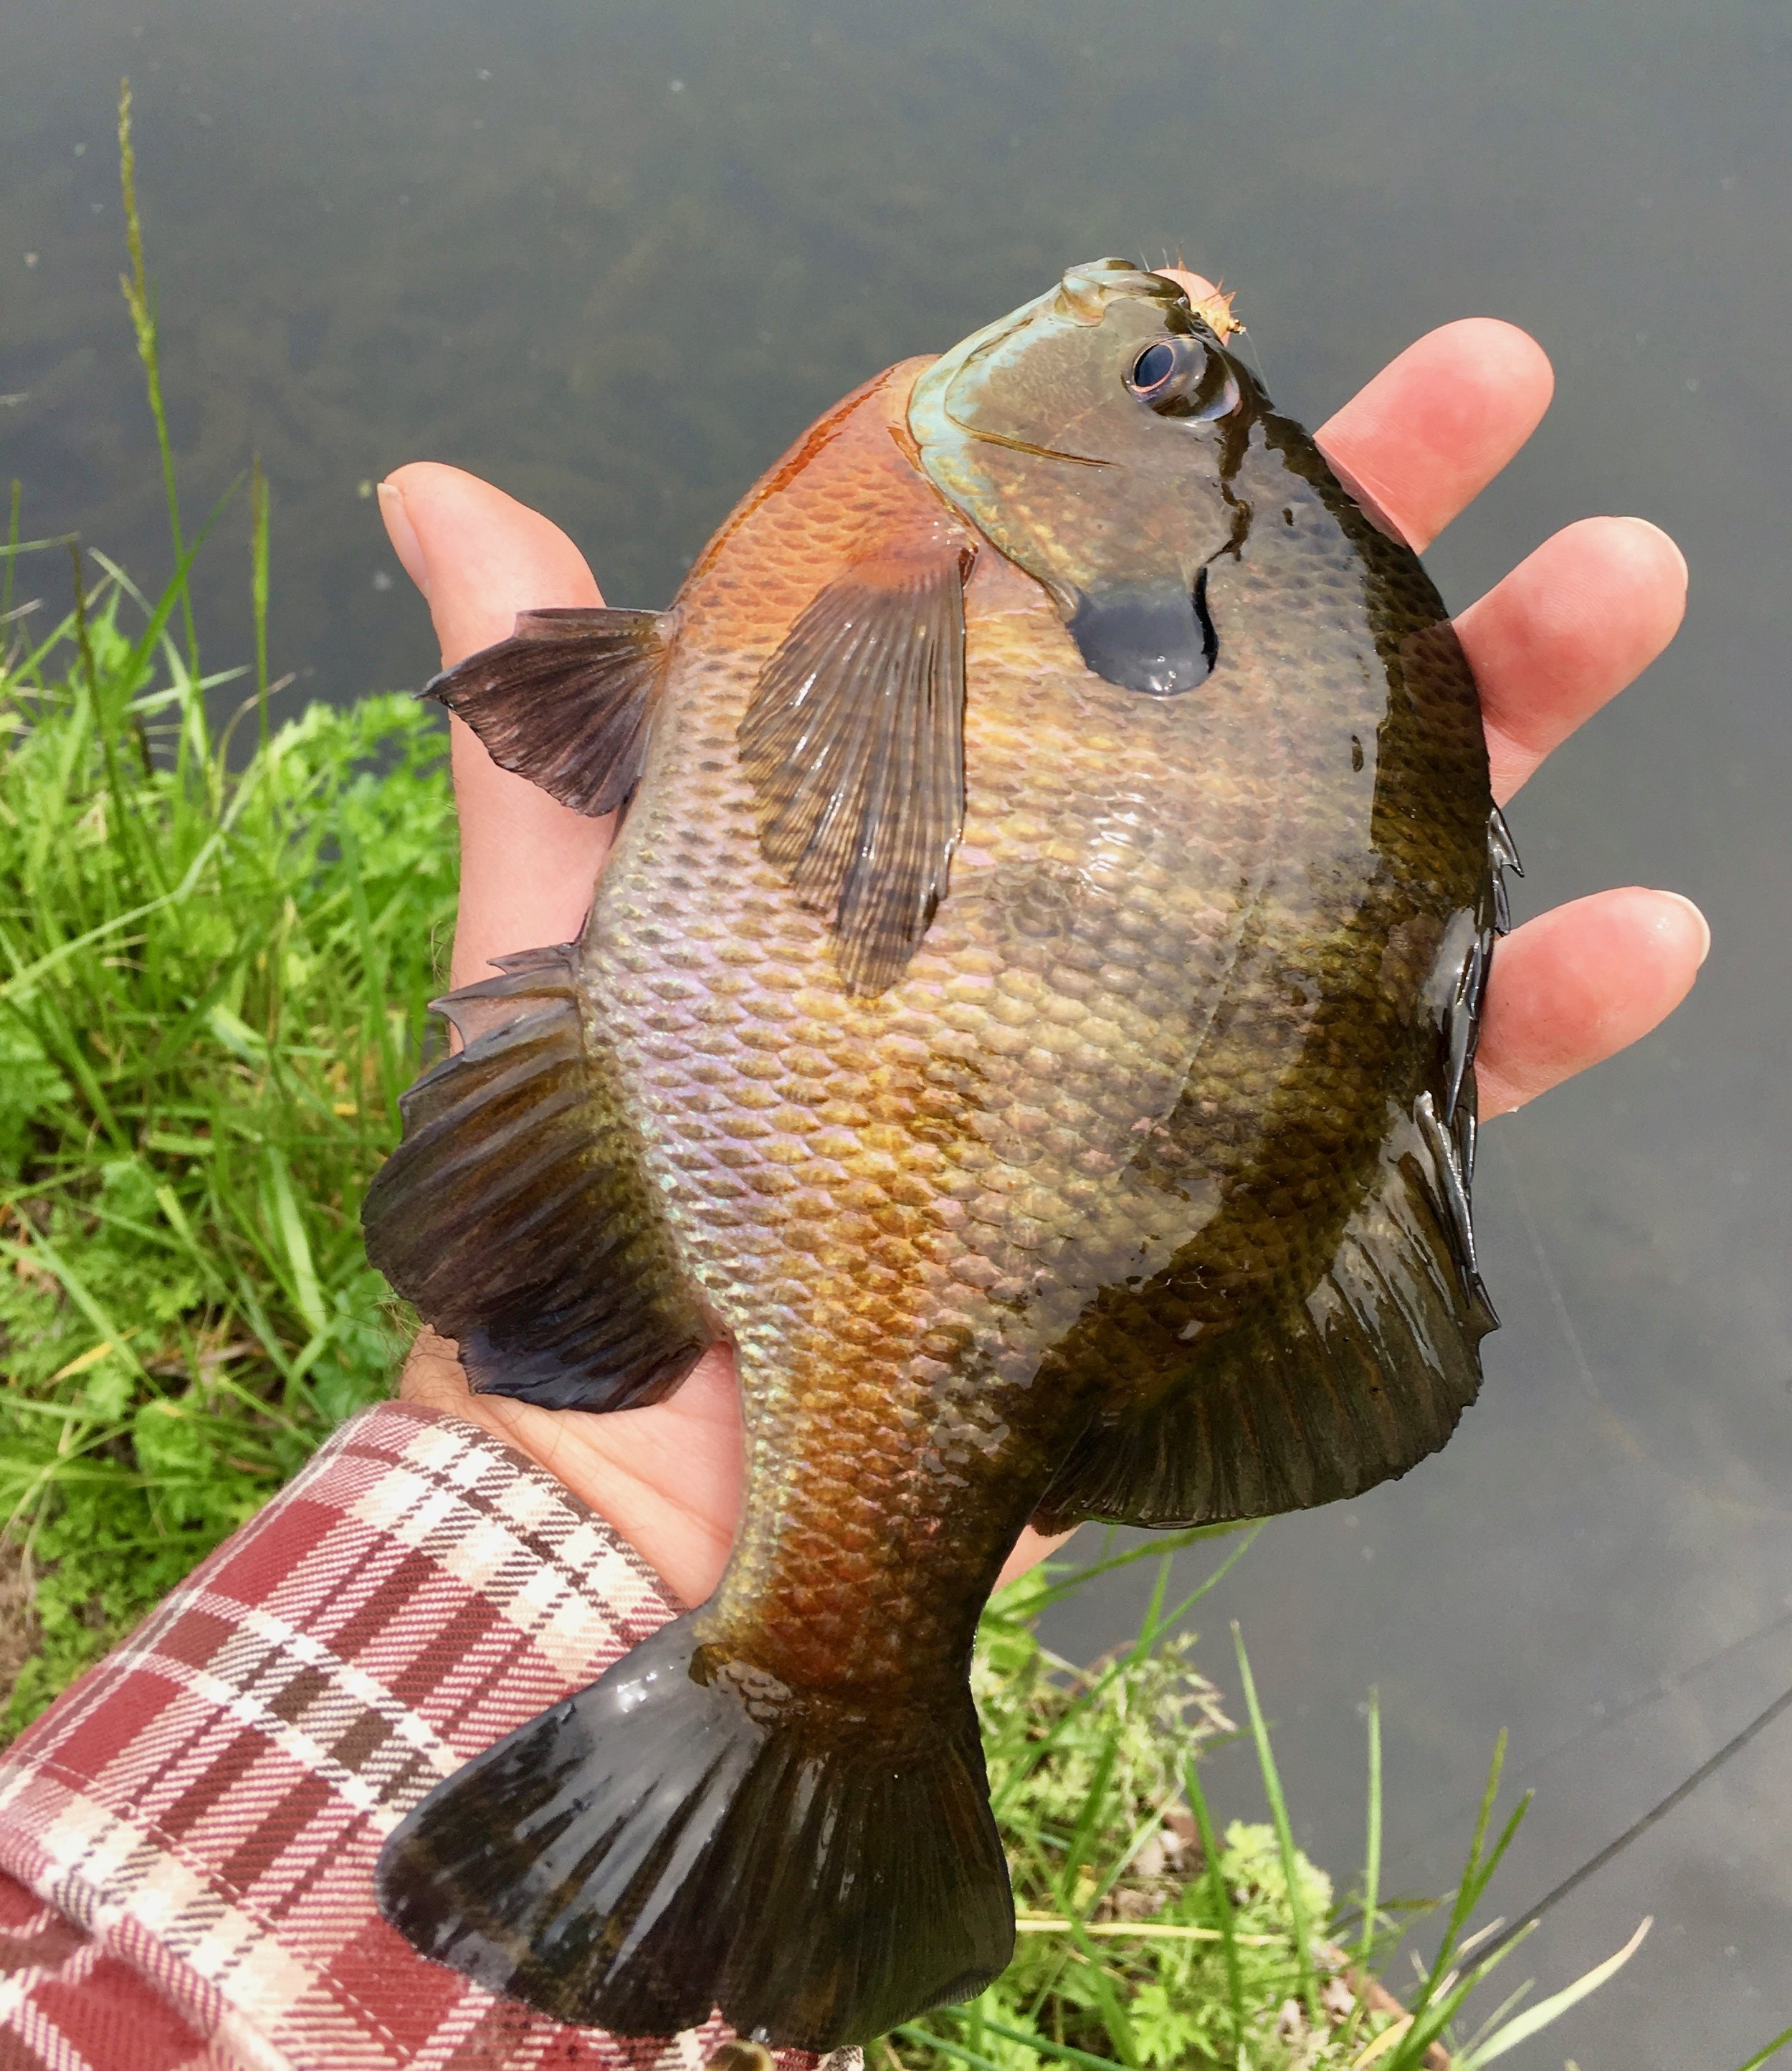 If you want to consistently catch hand sized panfish you need to change your tactics.